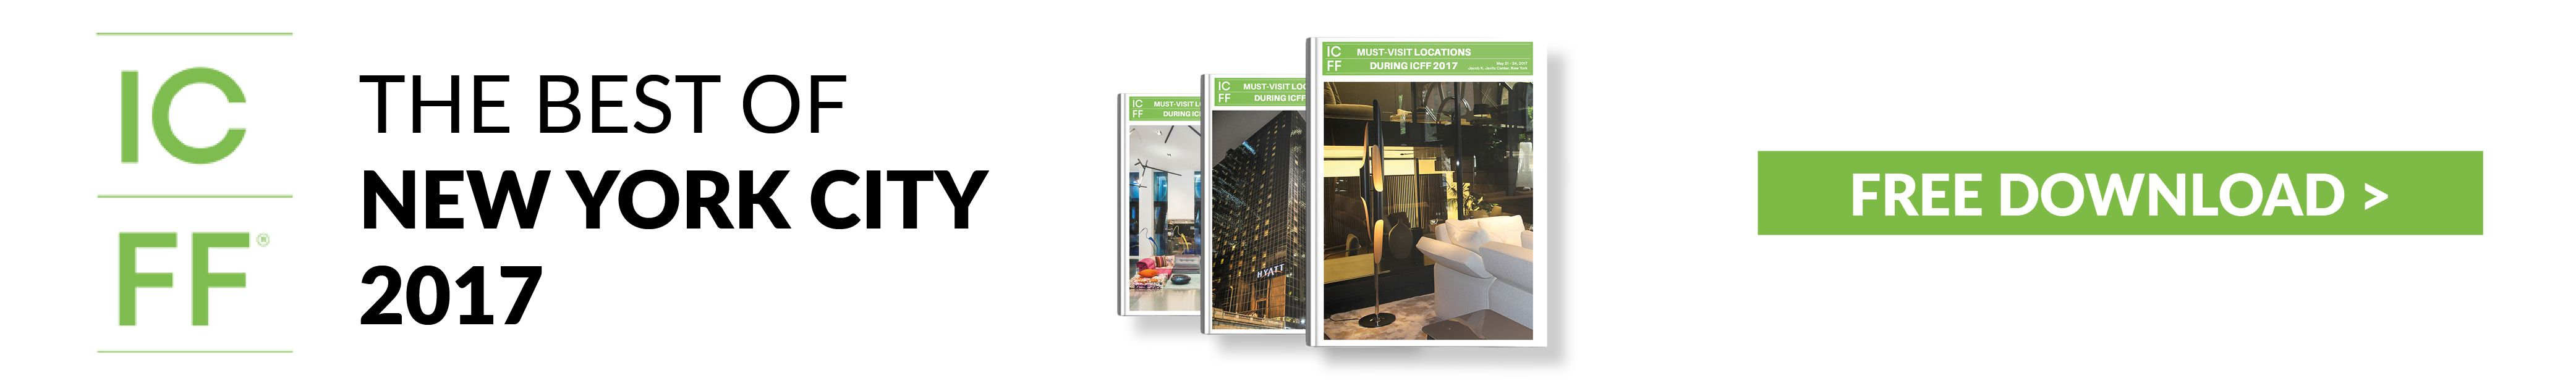 icff 2017 ICFF 2017: Celebrate Design in NYC ICFF1 banner home ICFF BRABBU'S Ultimate guide for ICFF & New York Design Week ICFF1 banner home